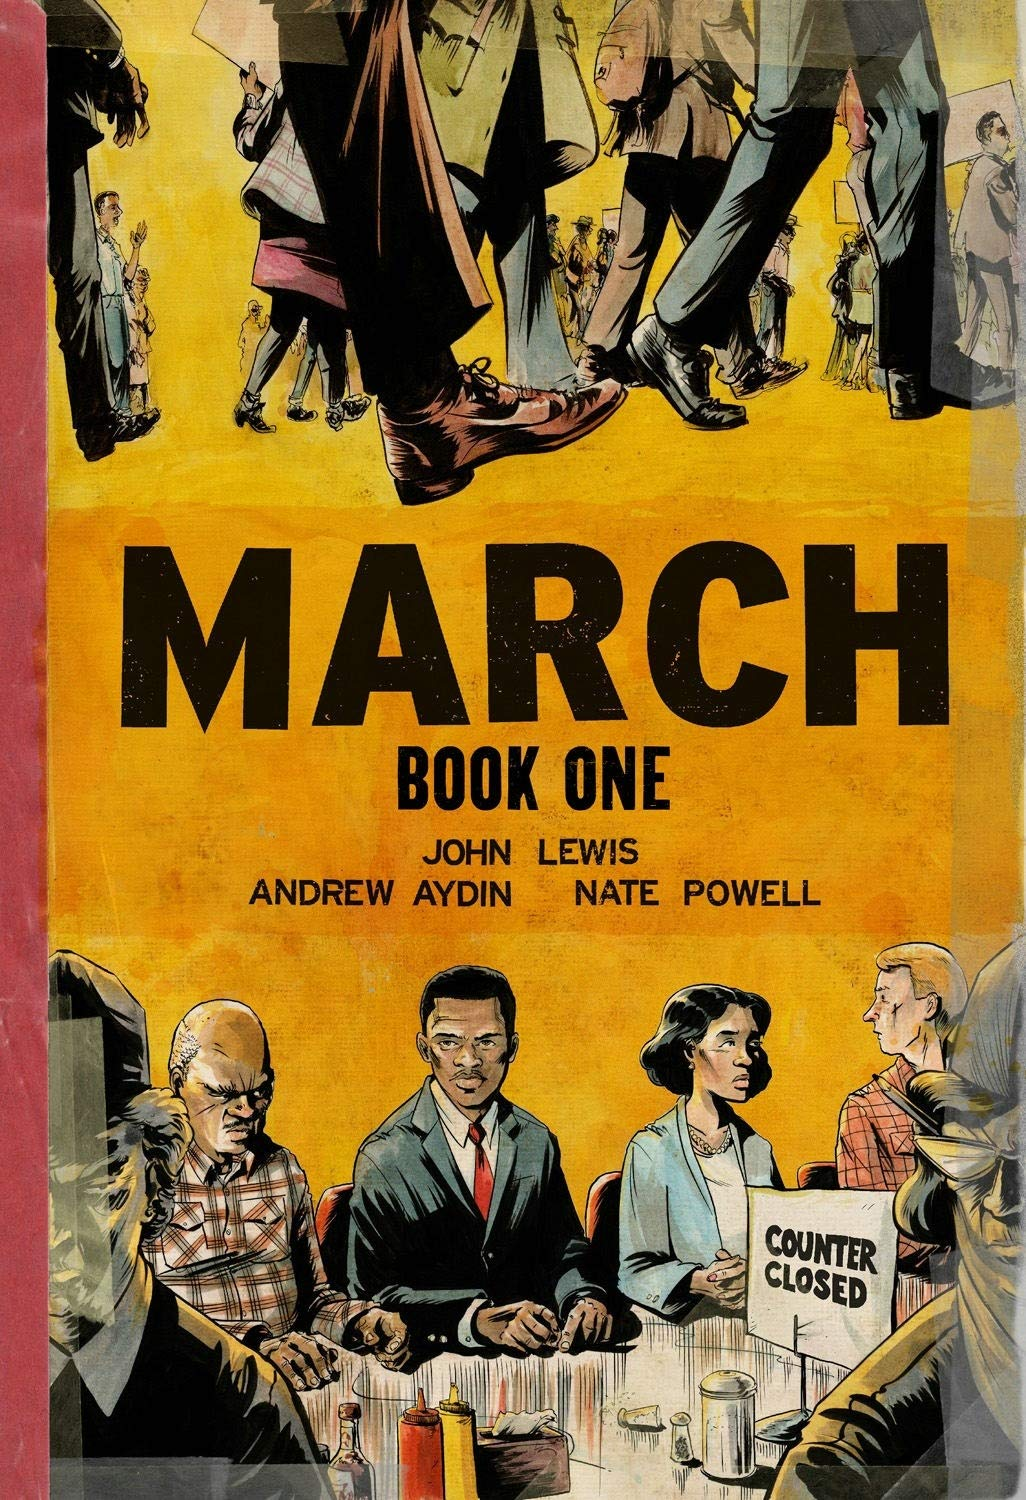 Book Cover for March by John Lewis